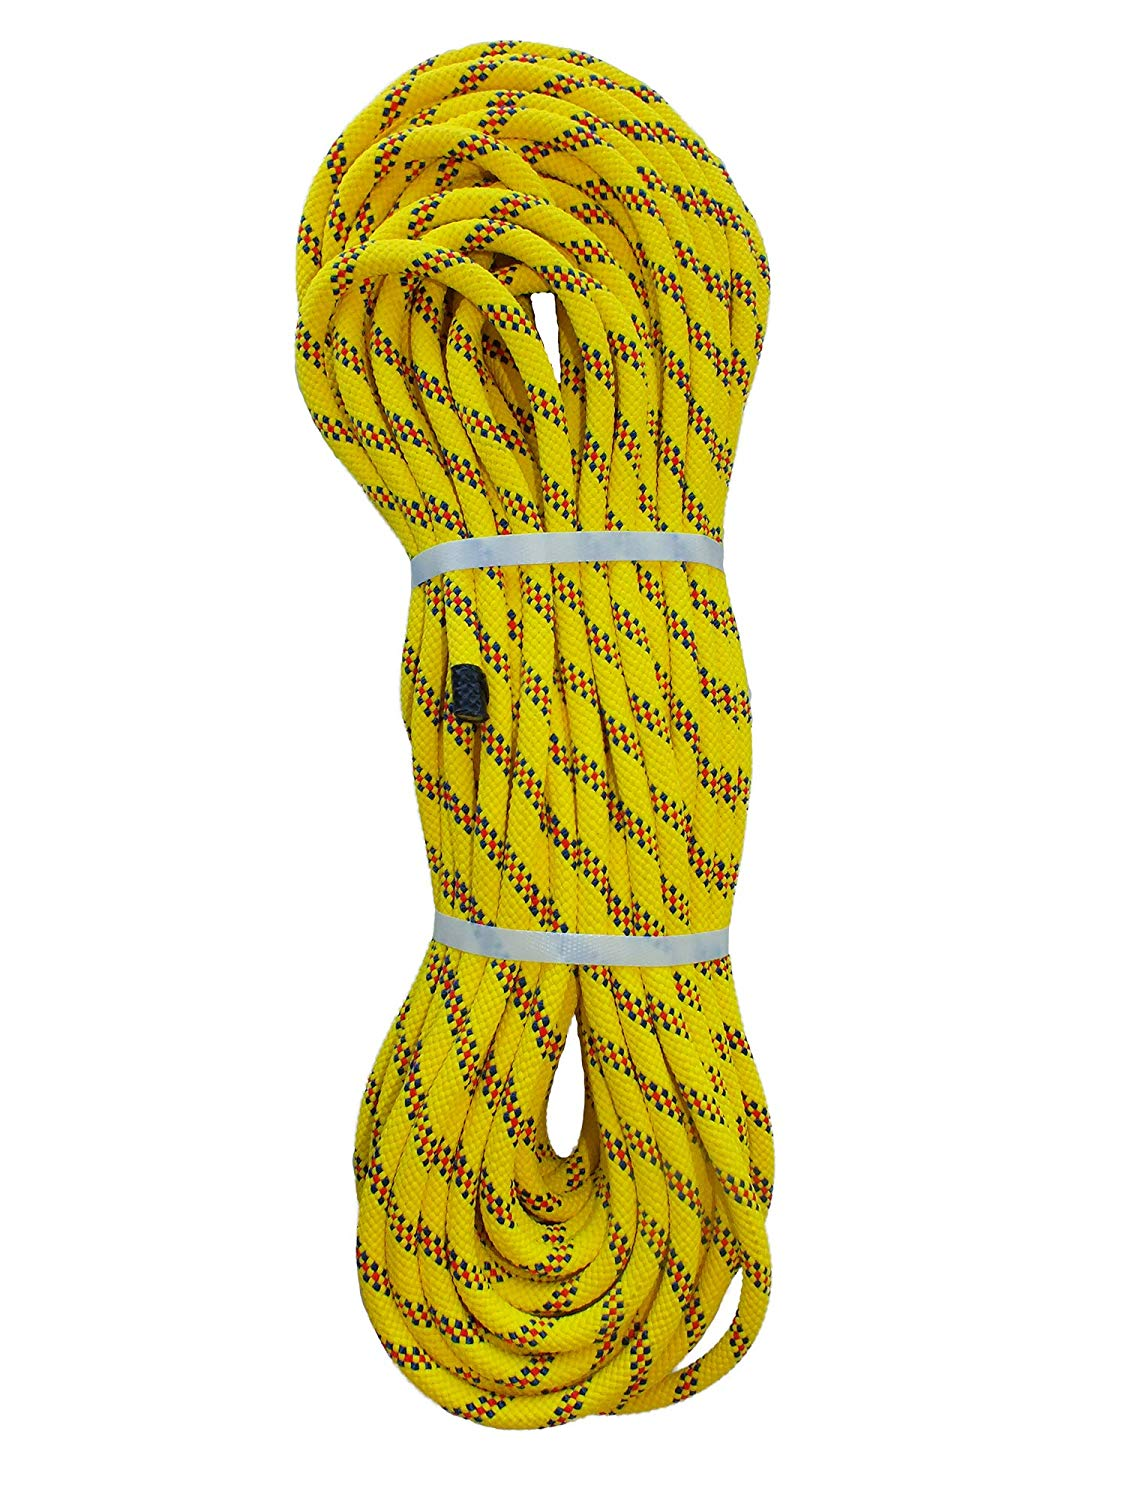 Pelican Rope Multifilament Polypropylene Rope (3/8 in – 7/16 in) – Water Rescue Line, Lightweight, Buoyant, High Visibility, Floating Line – Several Sizes & Lengths (120 ft – 200 ft)